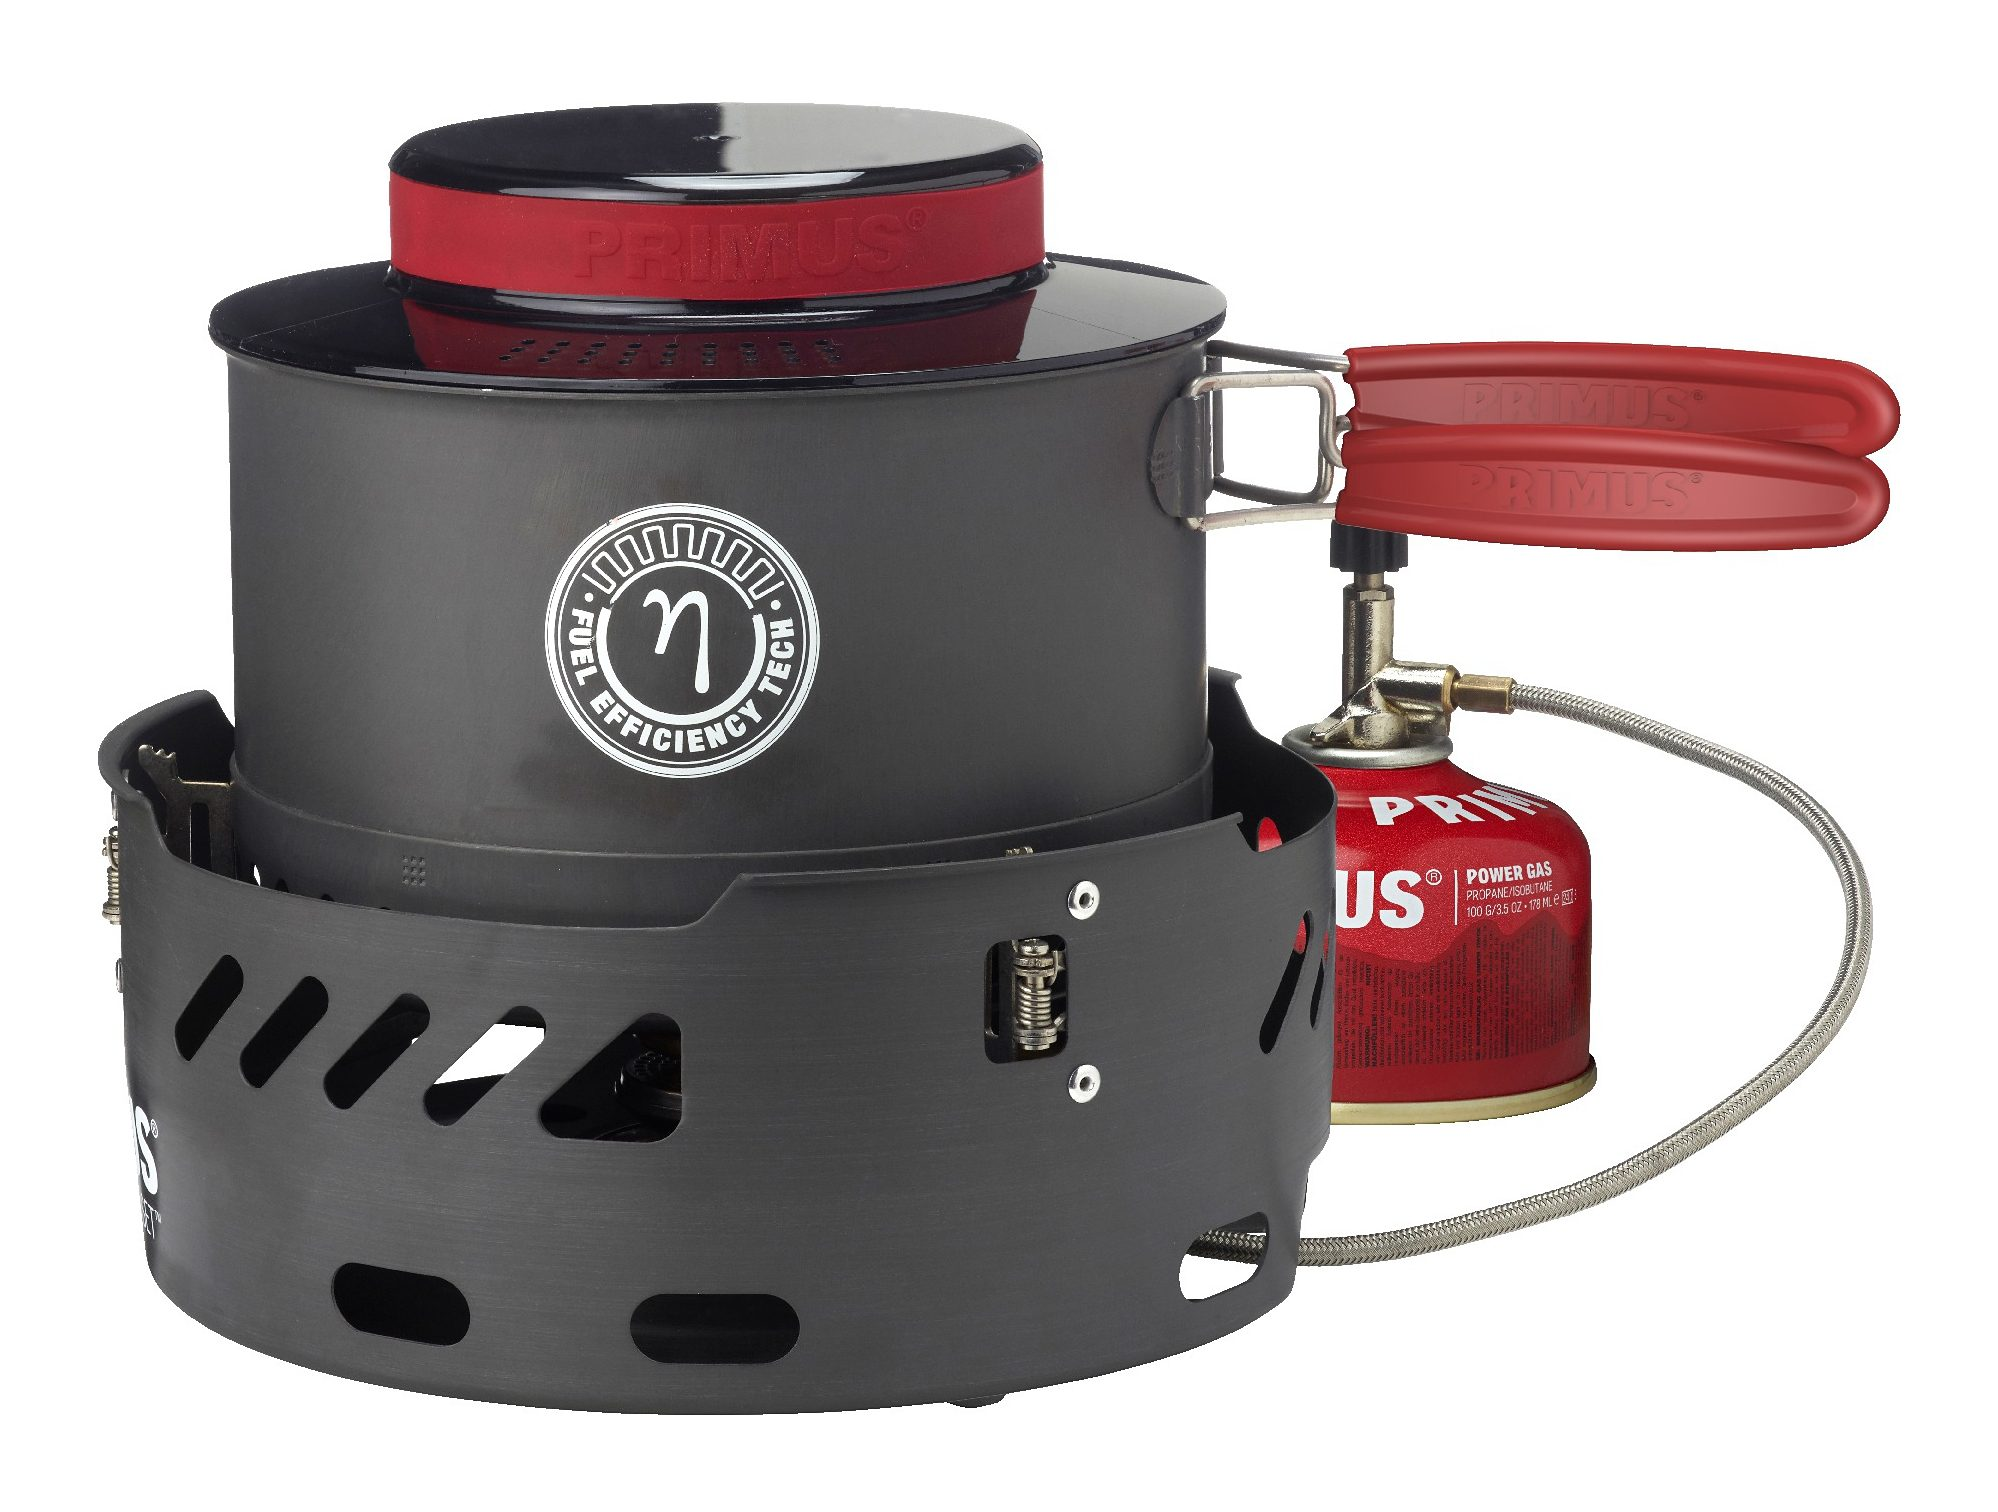 Primus Camping-Kocher »Power Stove Set«